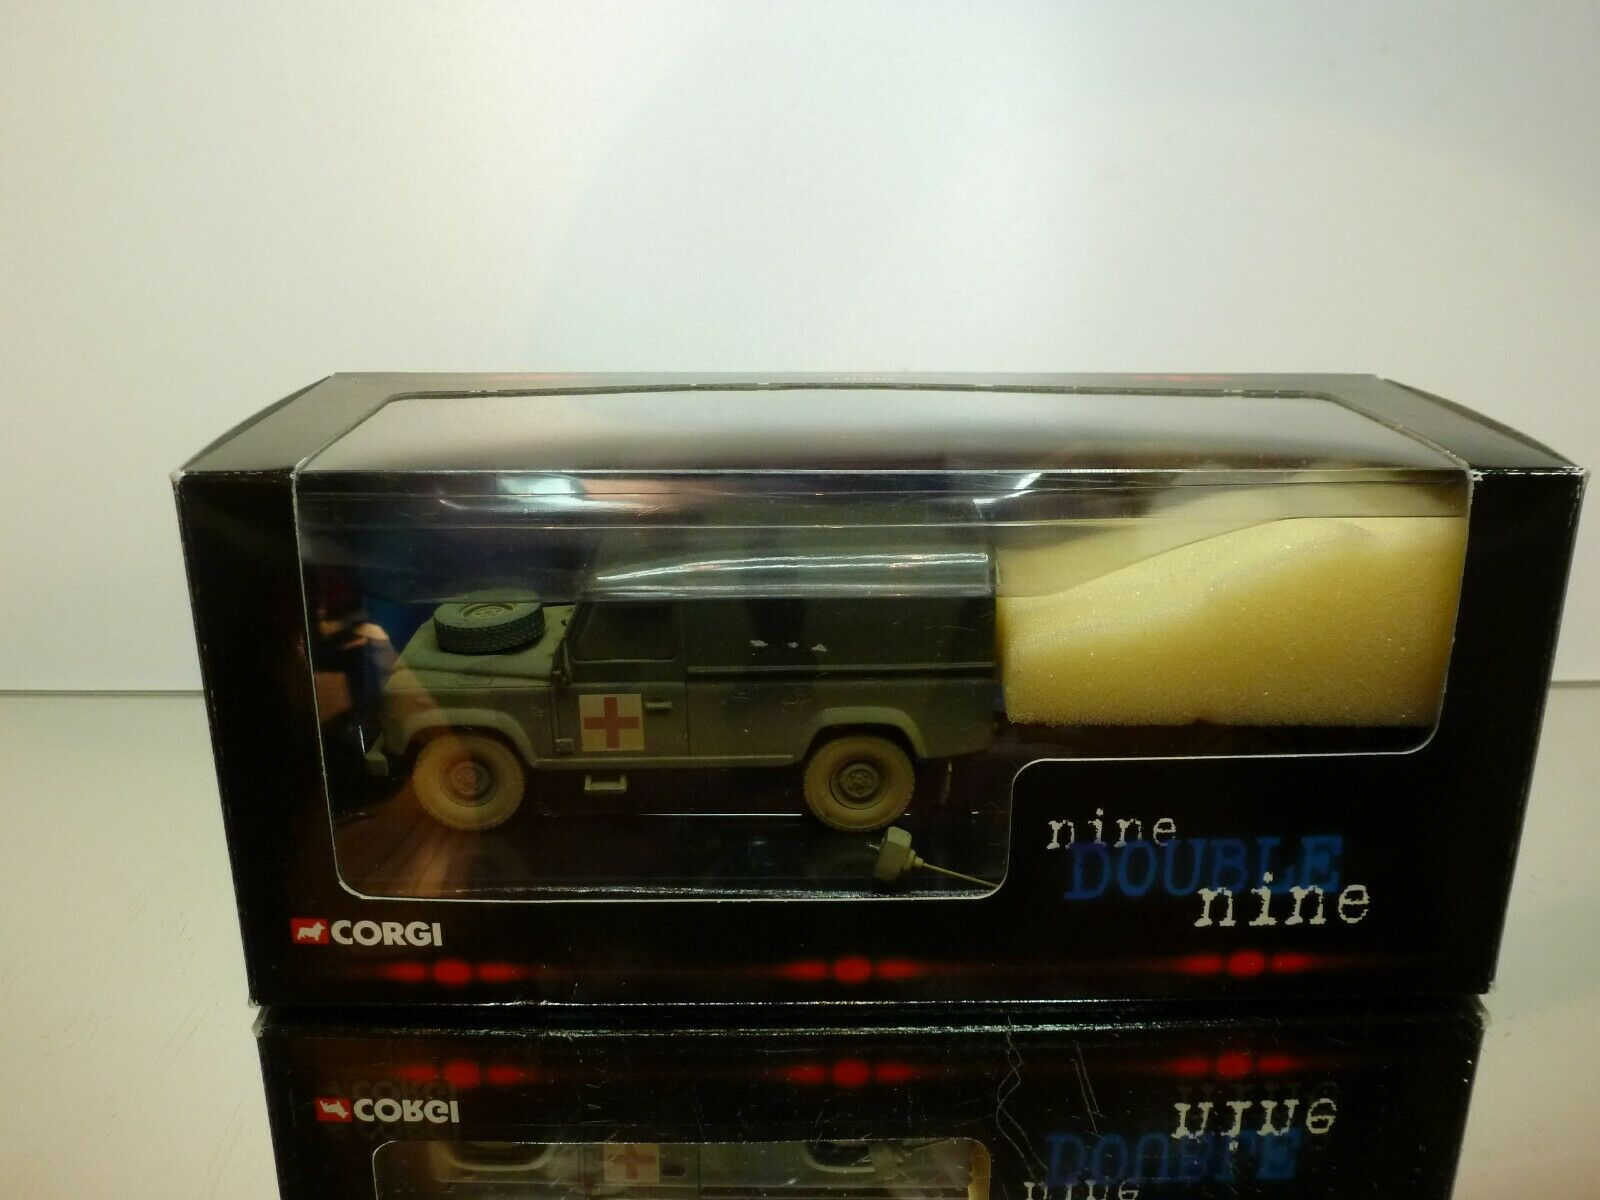 CORGI SpielzeugS CC07714 LAND ROVER DEFENDER & TRAILER - ARMY Grün - EXCELLENT IN BOX